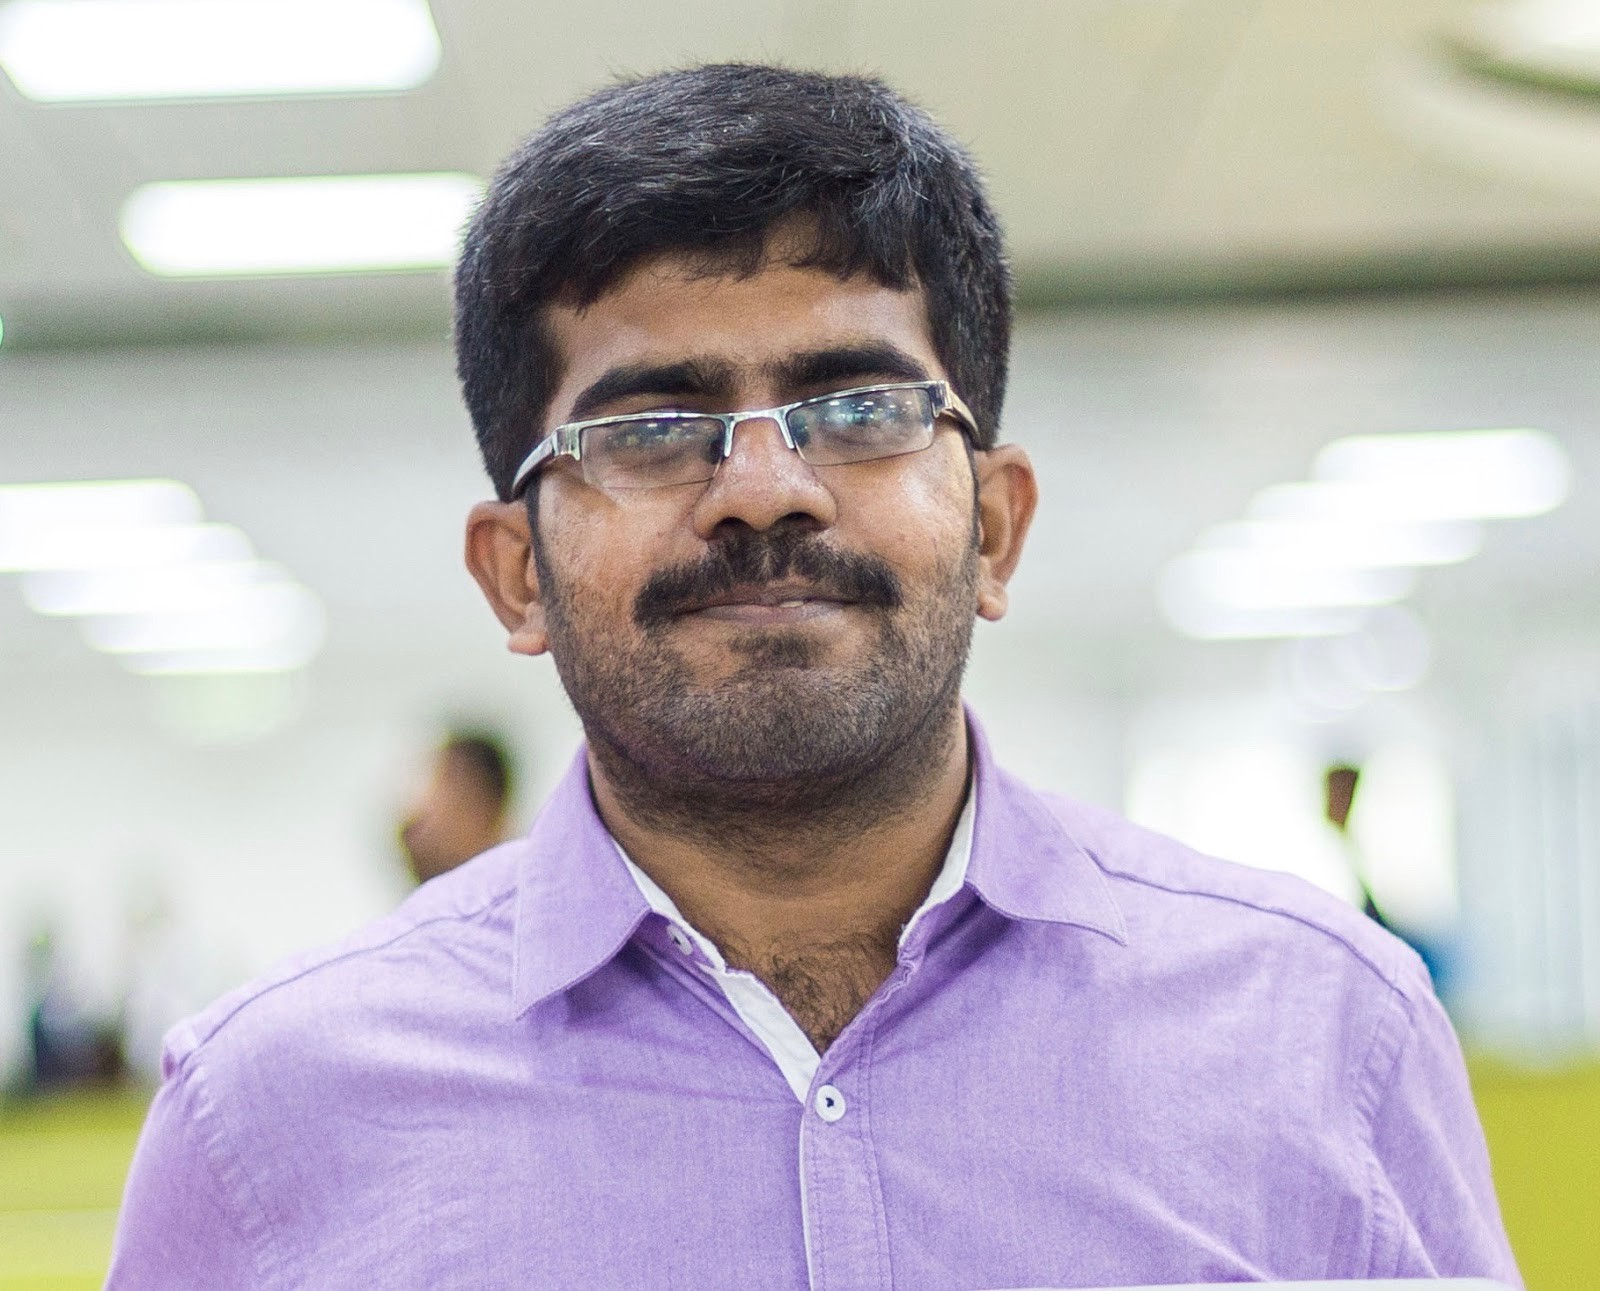 /interview-with-twice-kaggle-grandmaster-and-data-scientist-at-h20-ai-sudalai-rajkumar-cd952ef0c522 feature image